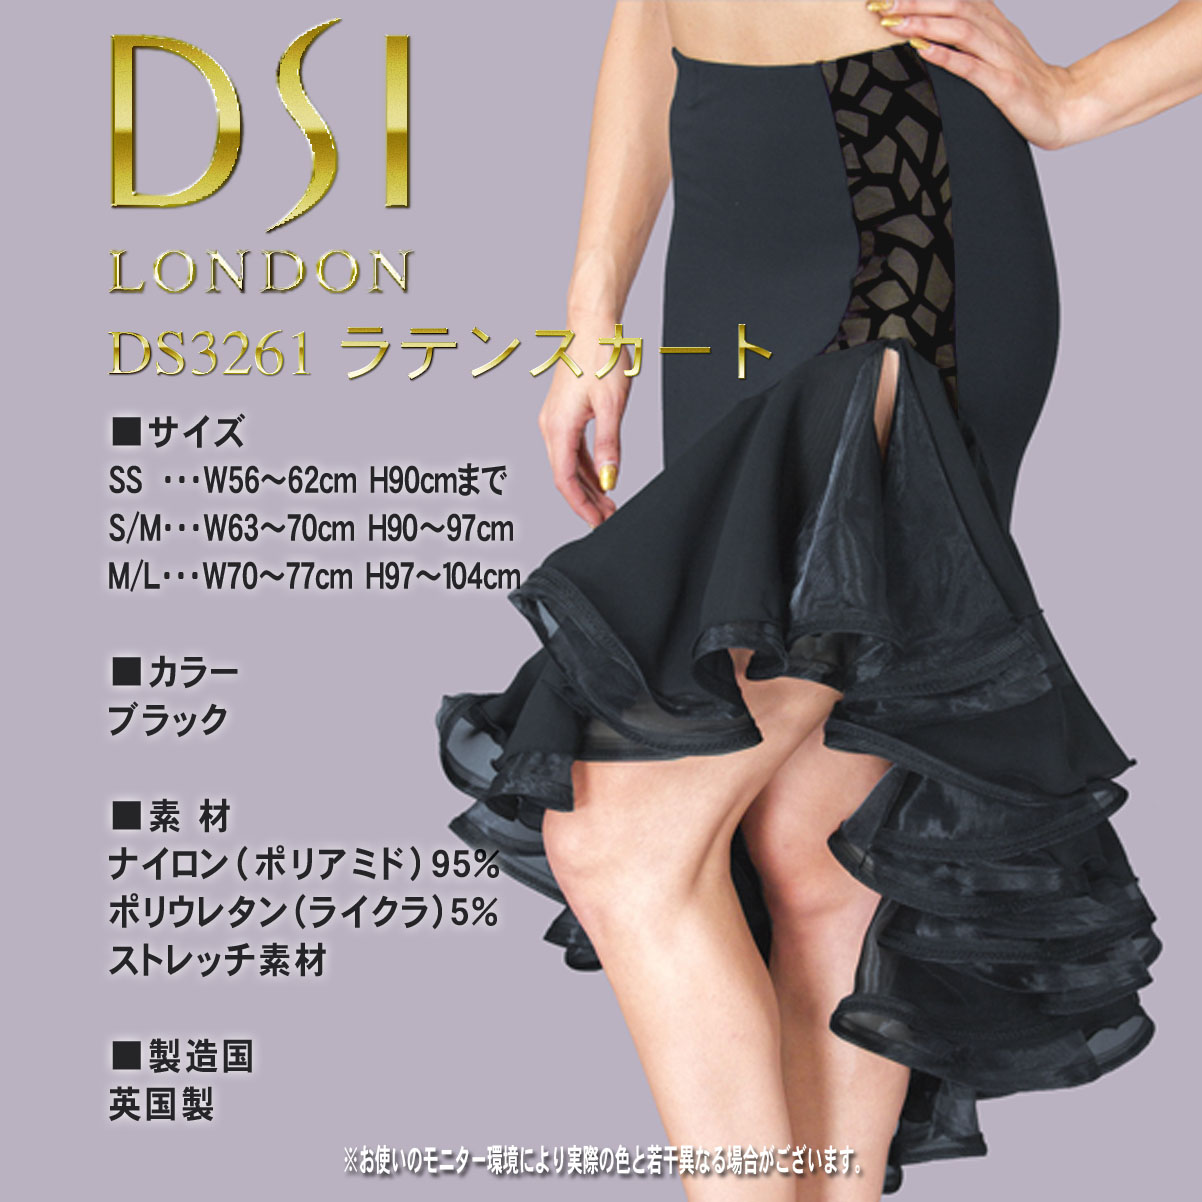 DSI 3261 Julianna skirt DS3261 ラテンスカート03